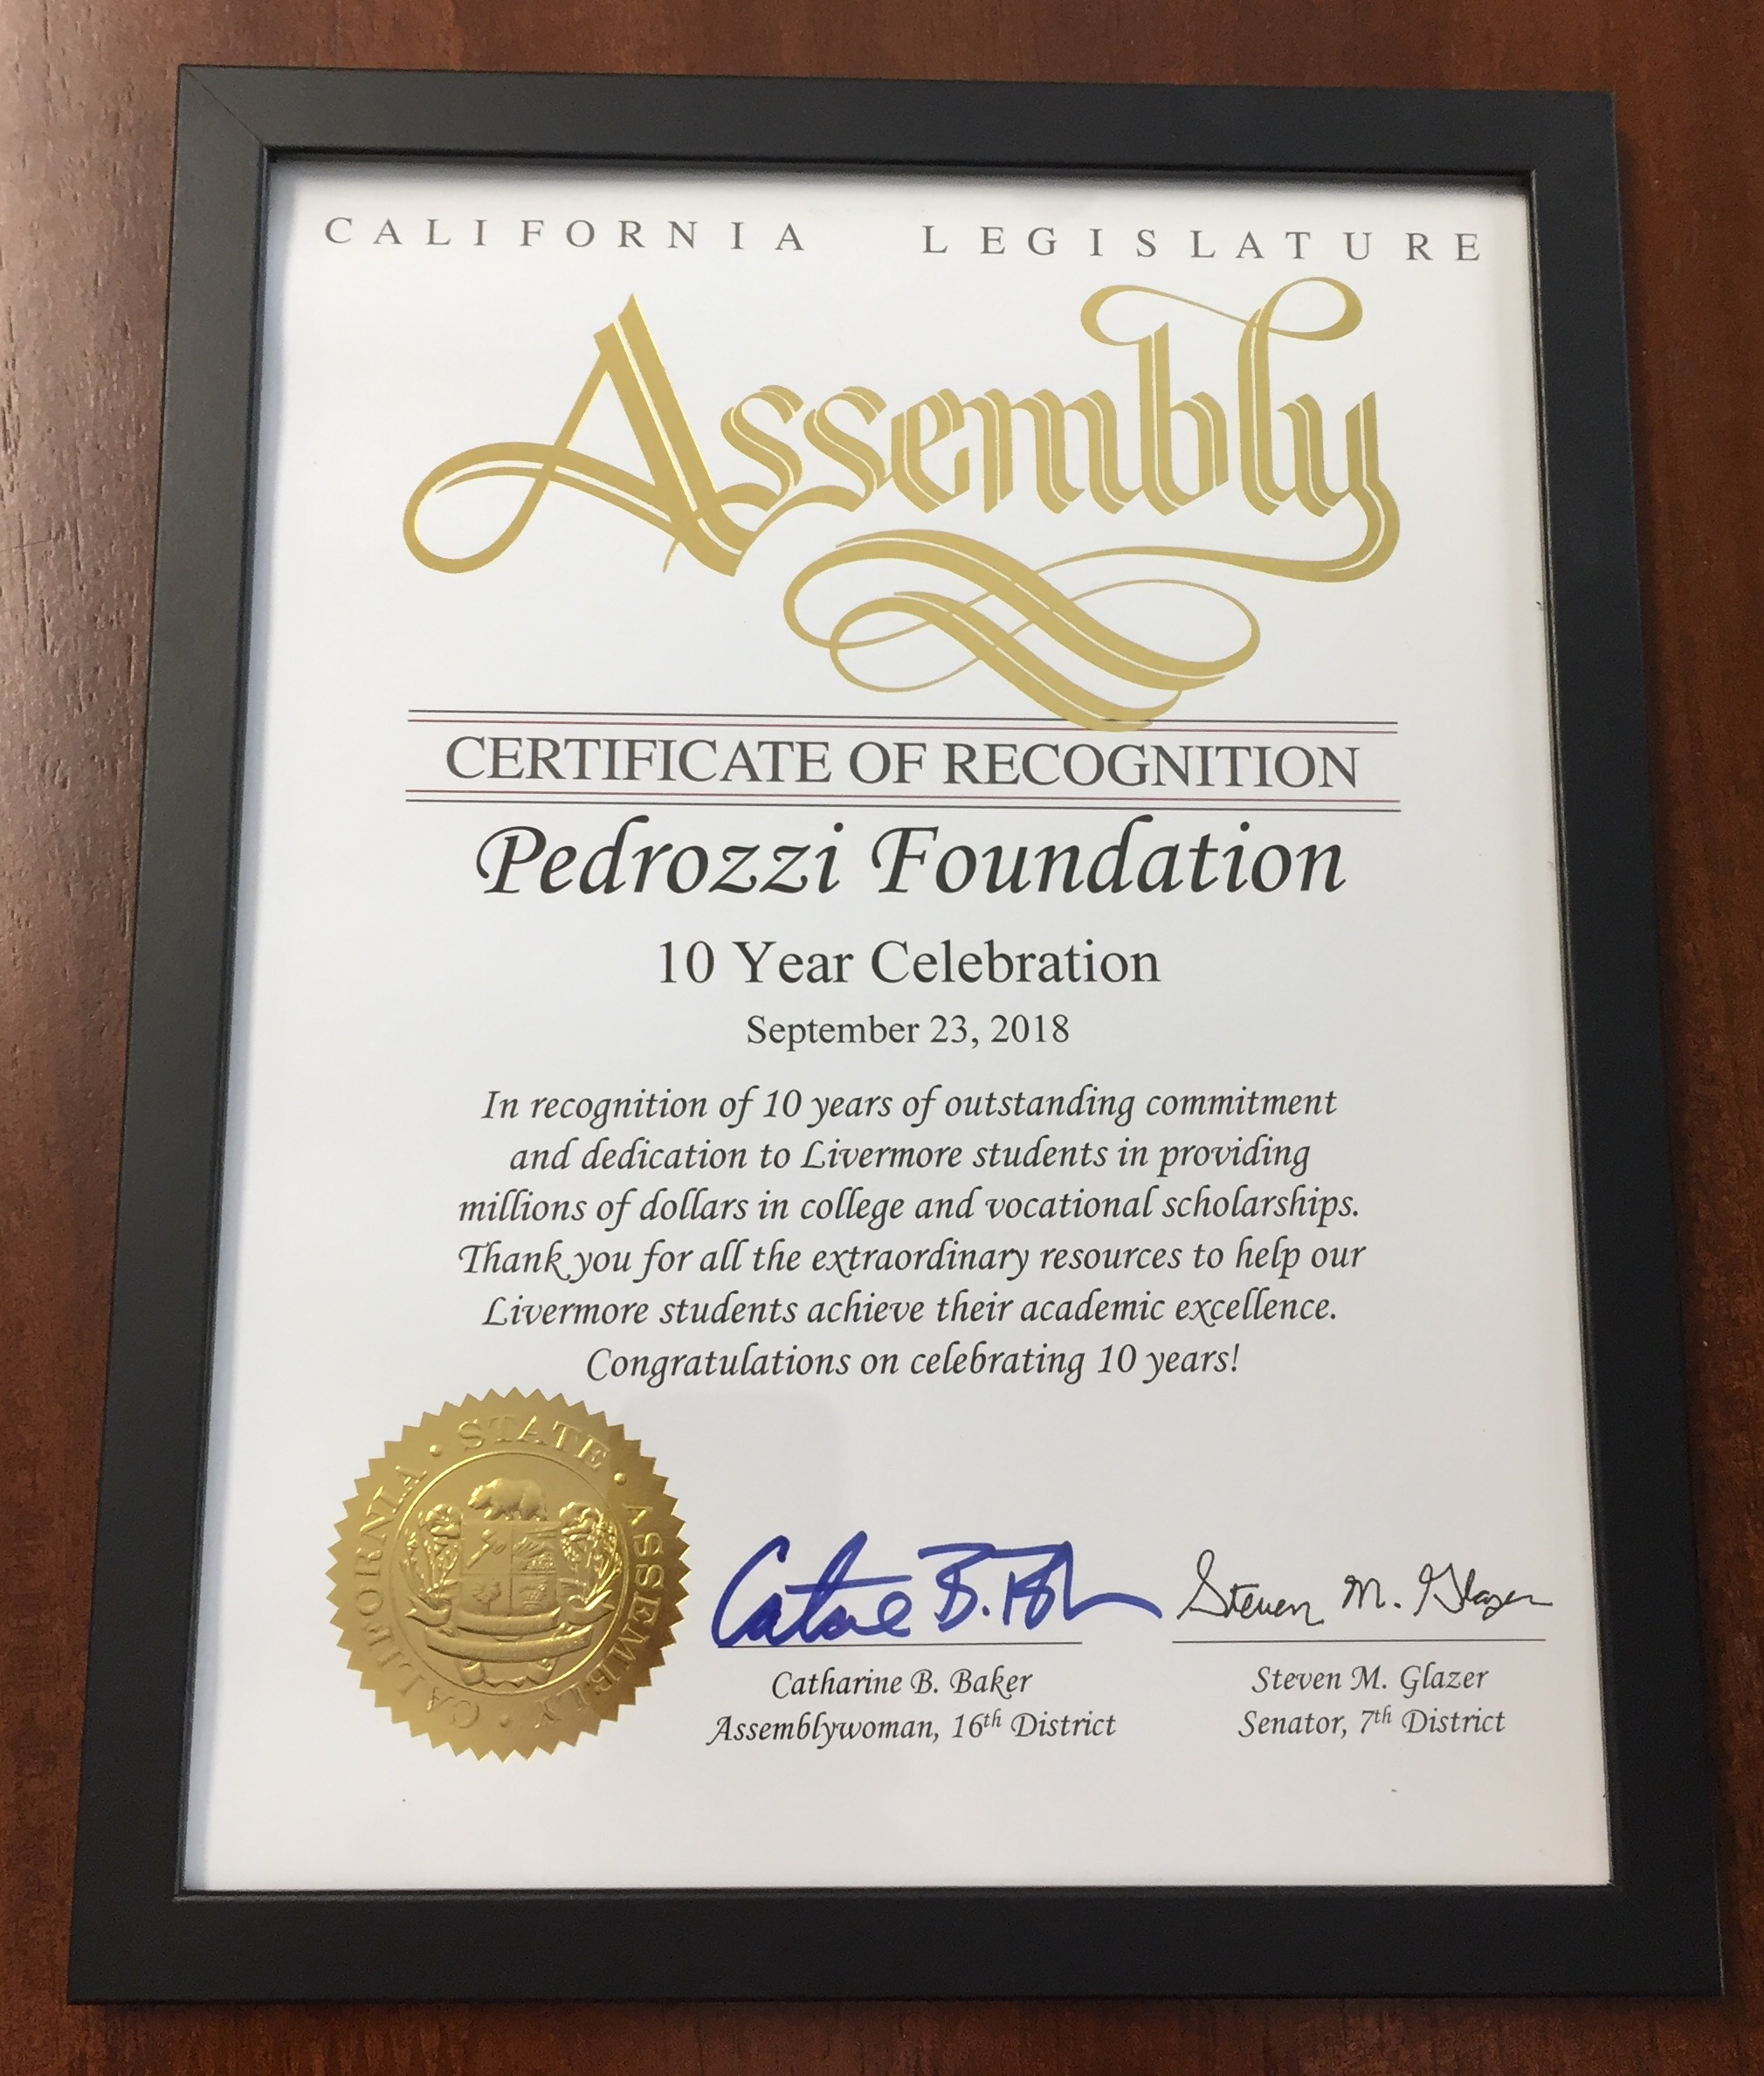 2018 California Legislature Assembly Certificate of Recognition